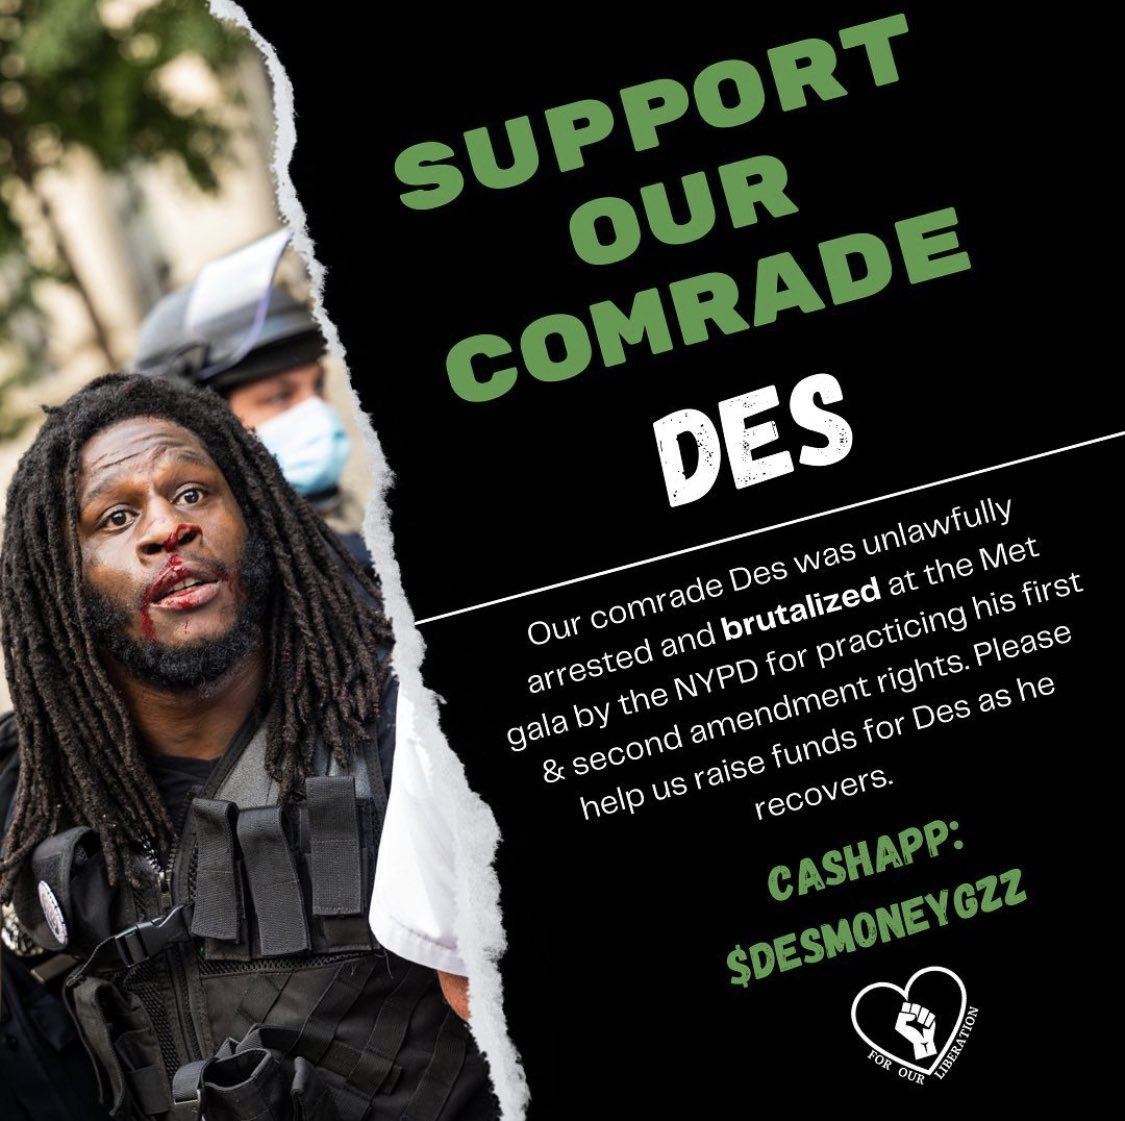 Yesterday, Des was brutalized by NYPD — and he needs our help